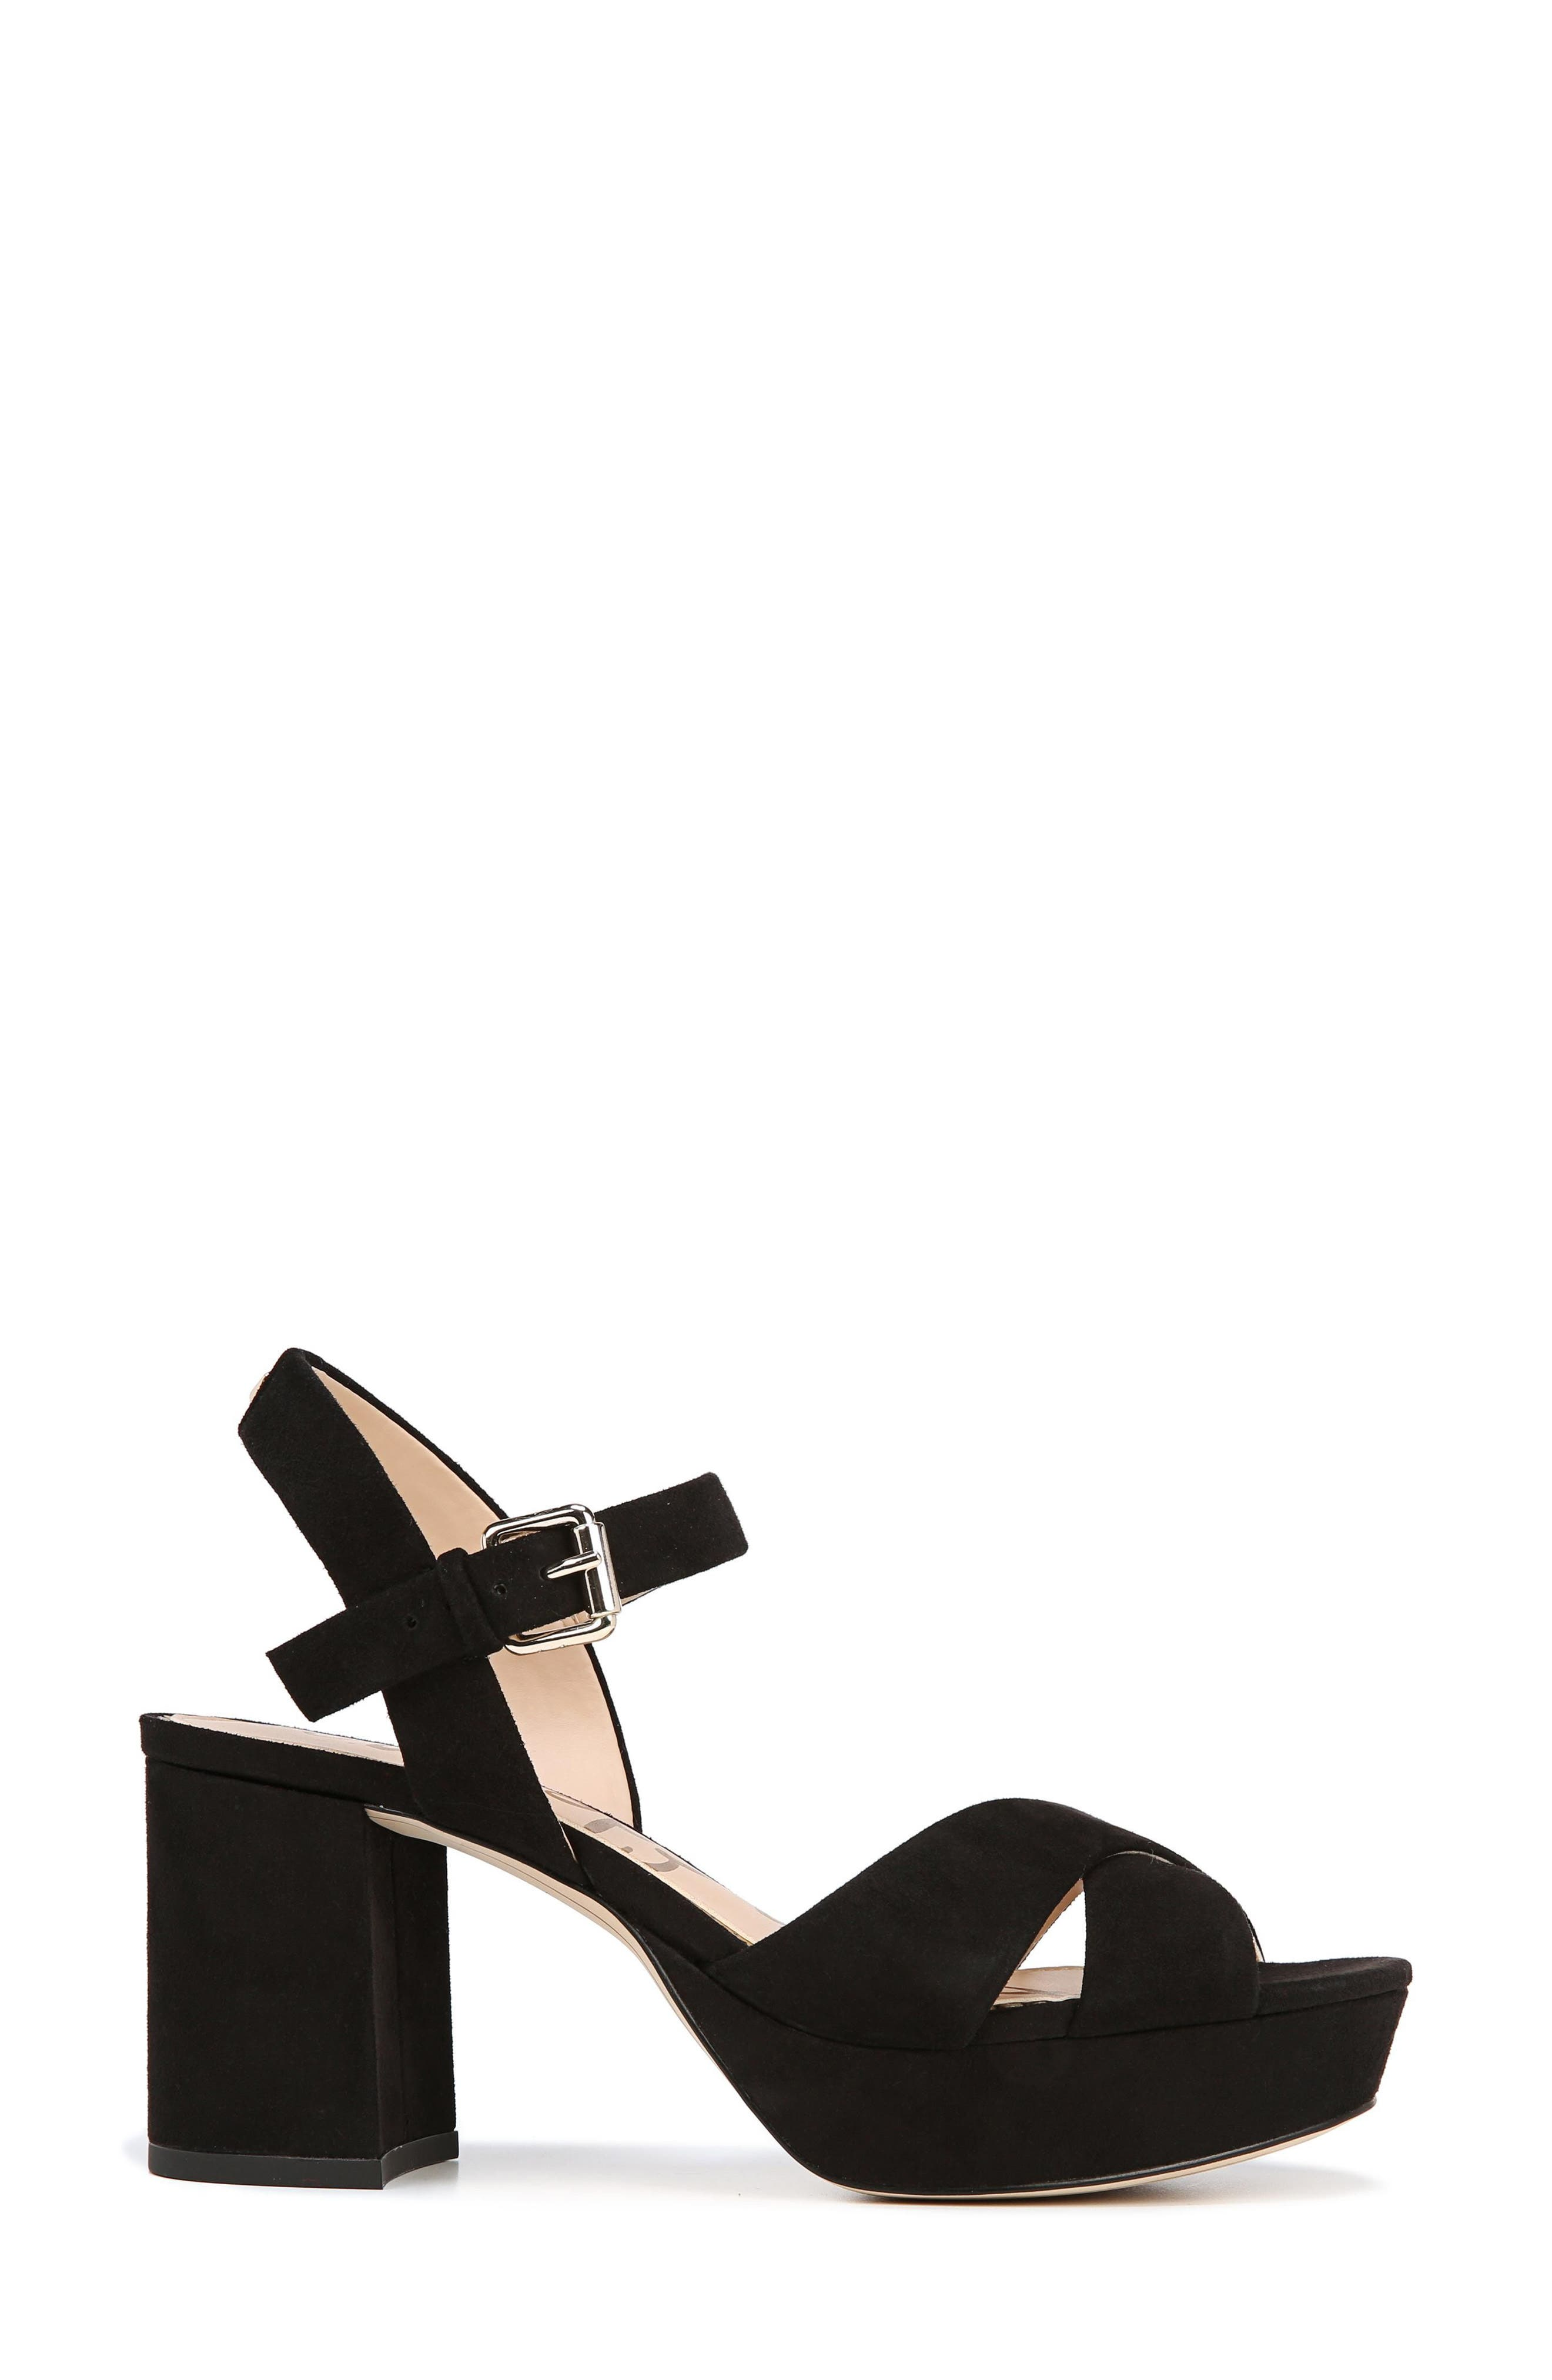 Jolene Platform Sandal,                             Alternate thumbnail 3, color,                             BLACK SUEDE